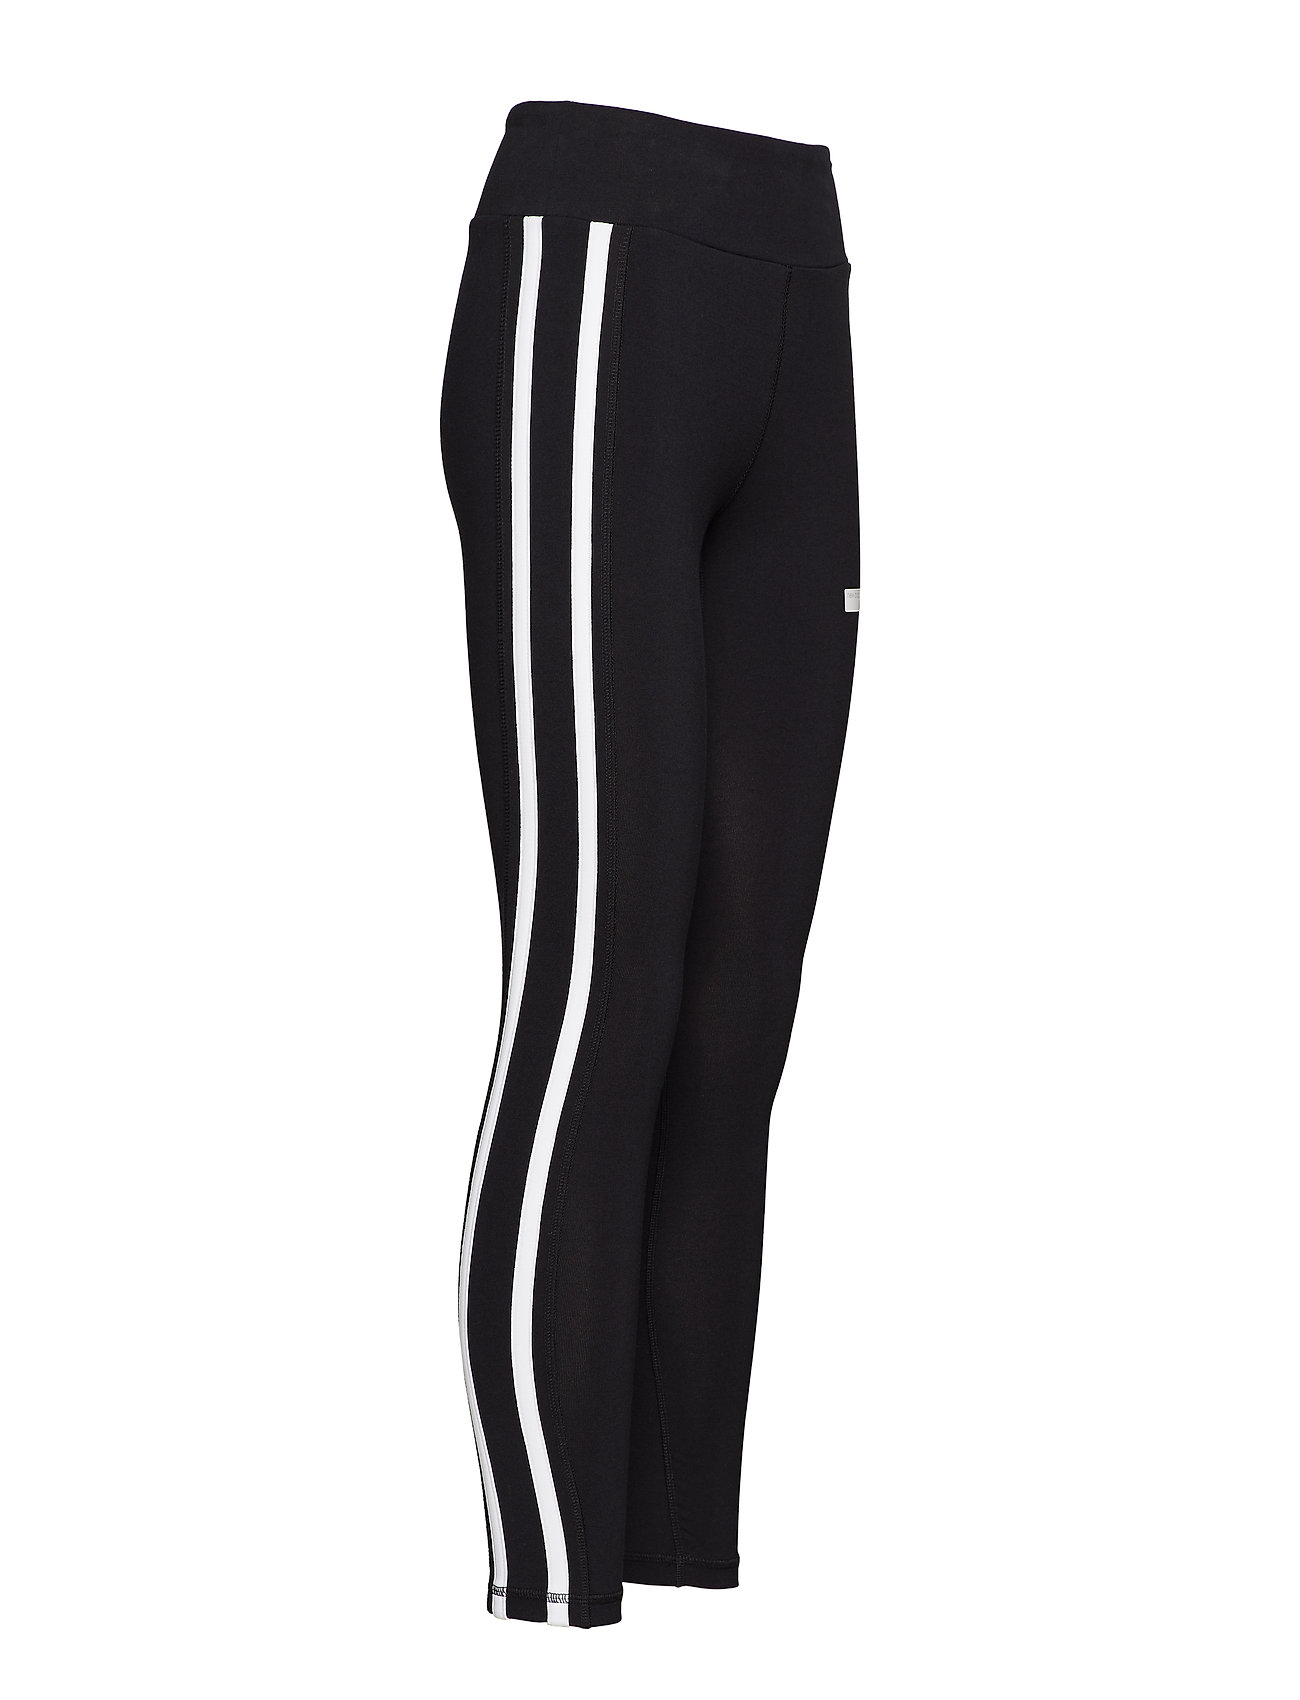 Balance Athletics Nb Leggingblack Track MultiNew 354jqRLcA